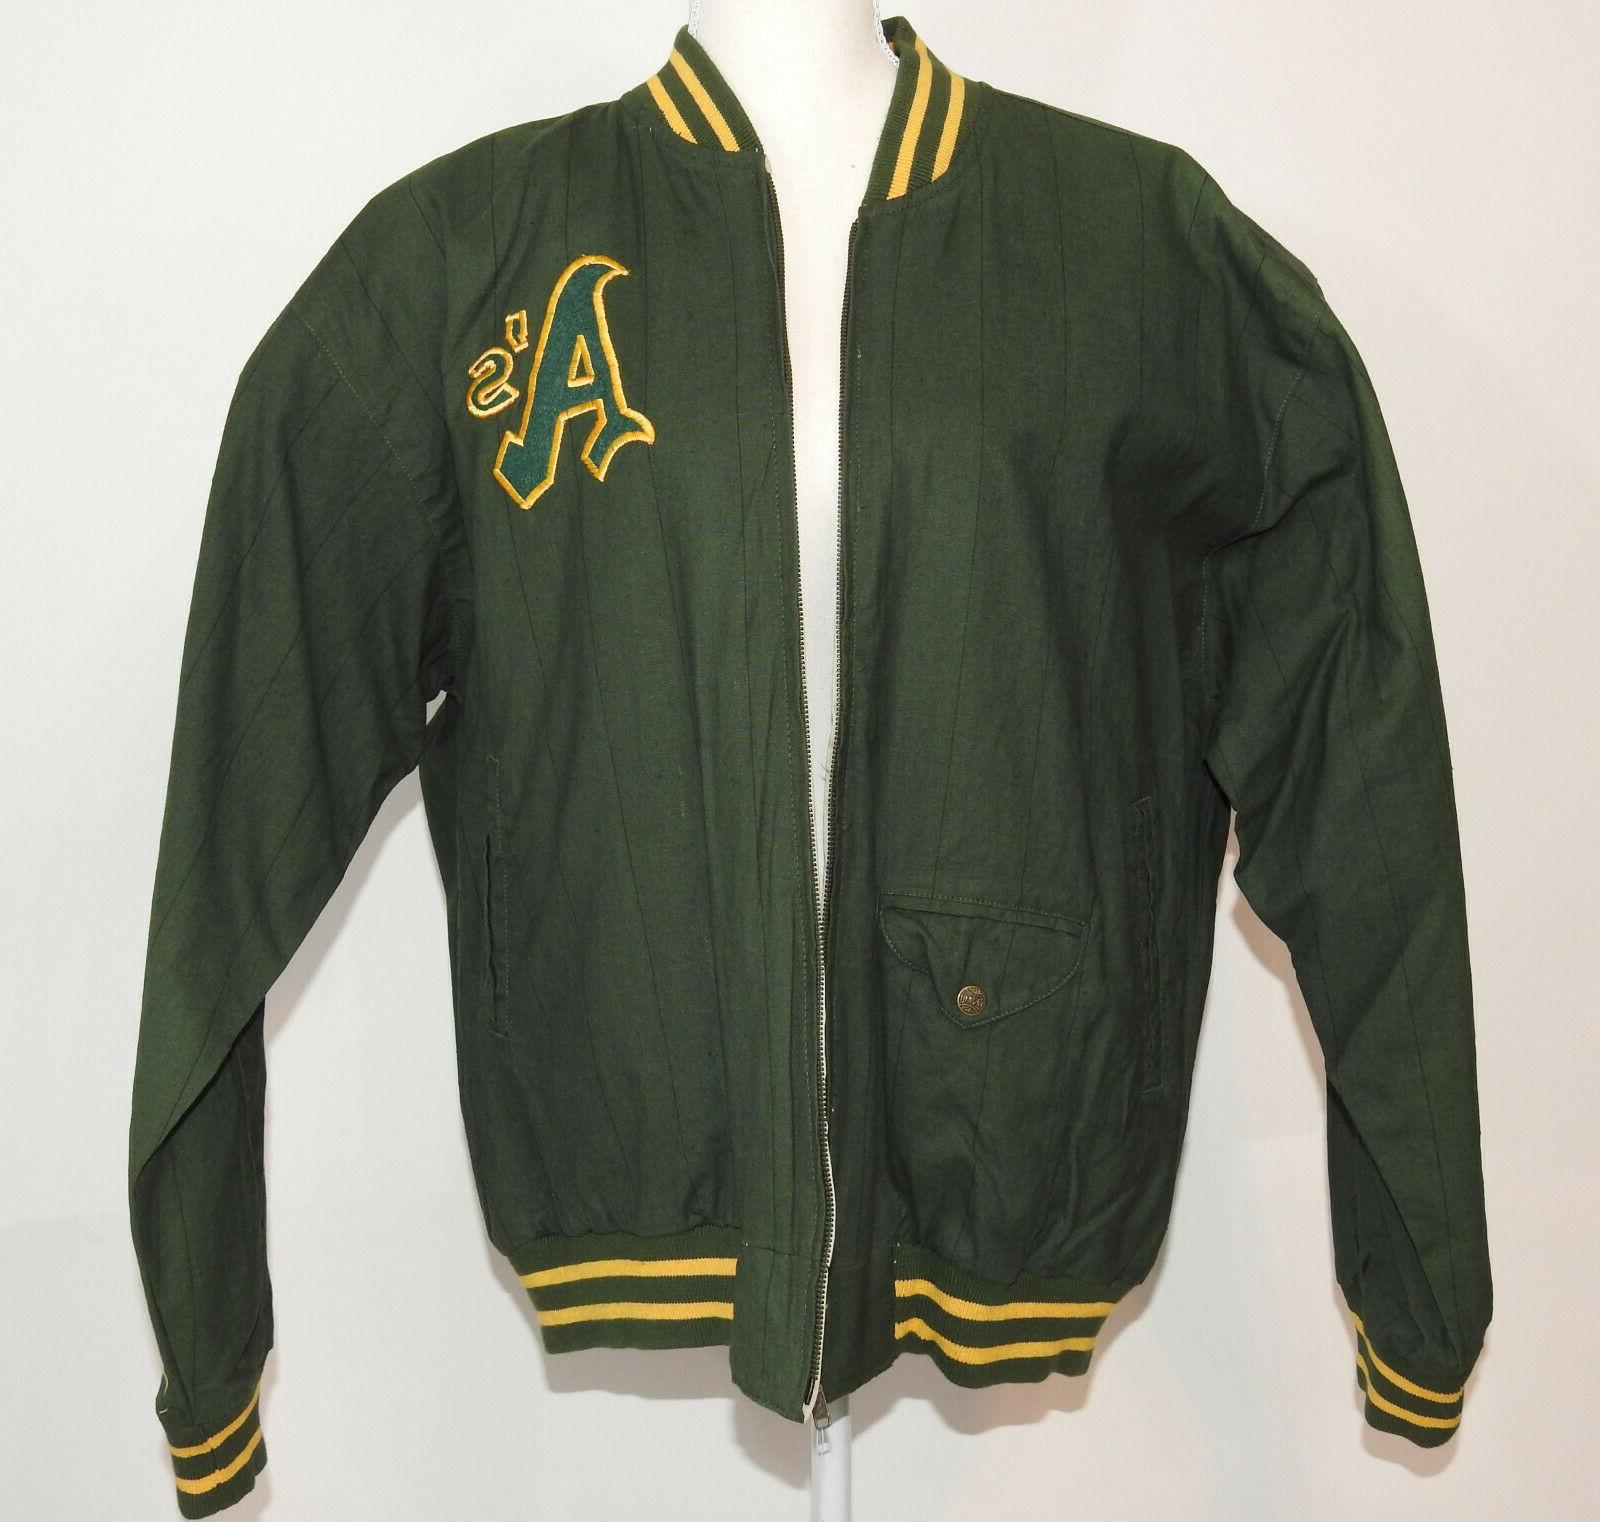 Oakland As Vintage 72', 73',74' Series Commemorative Jacket